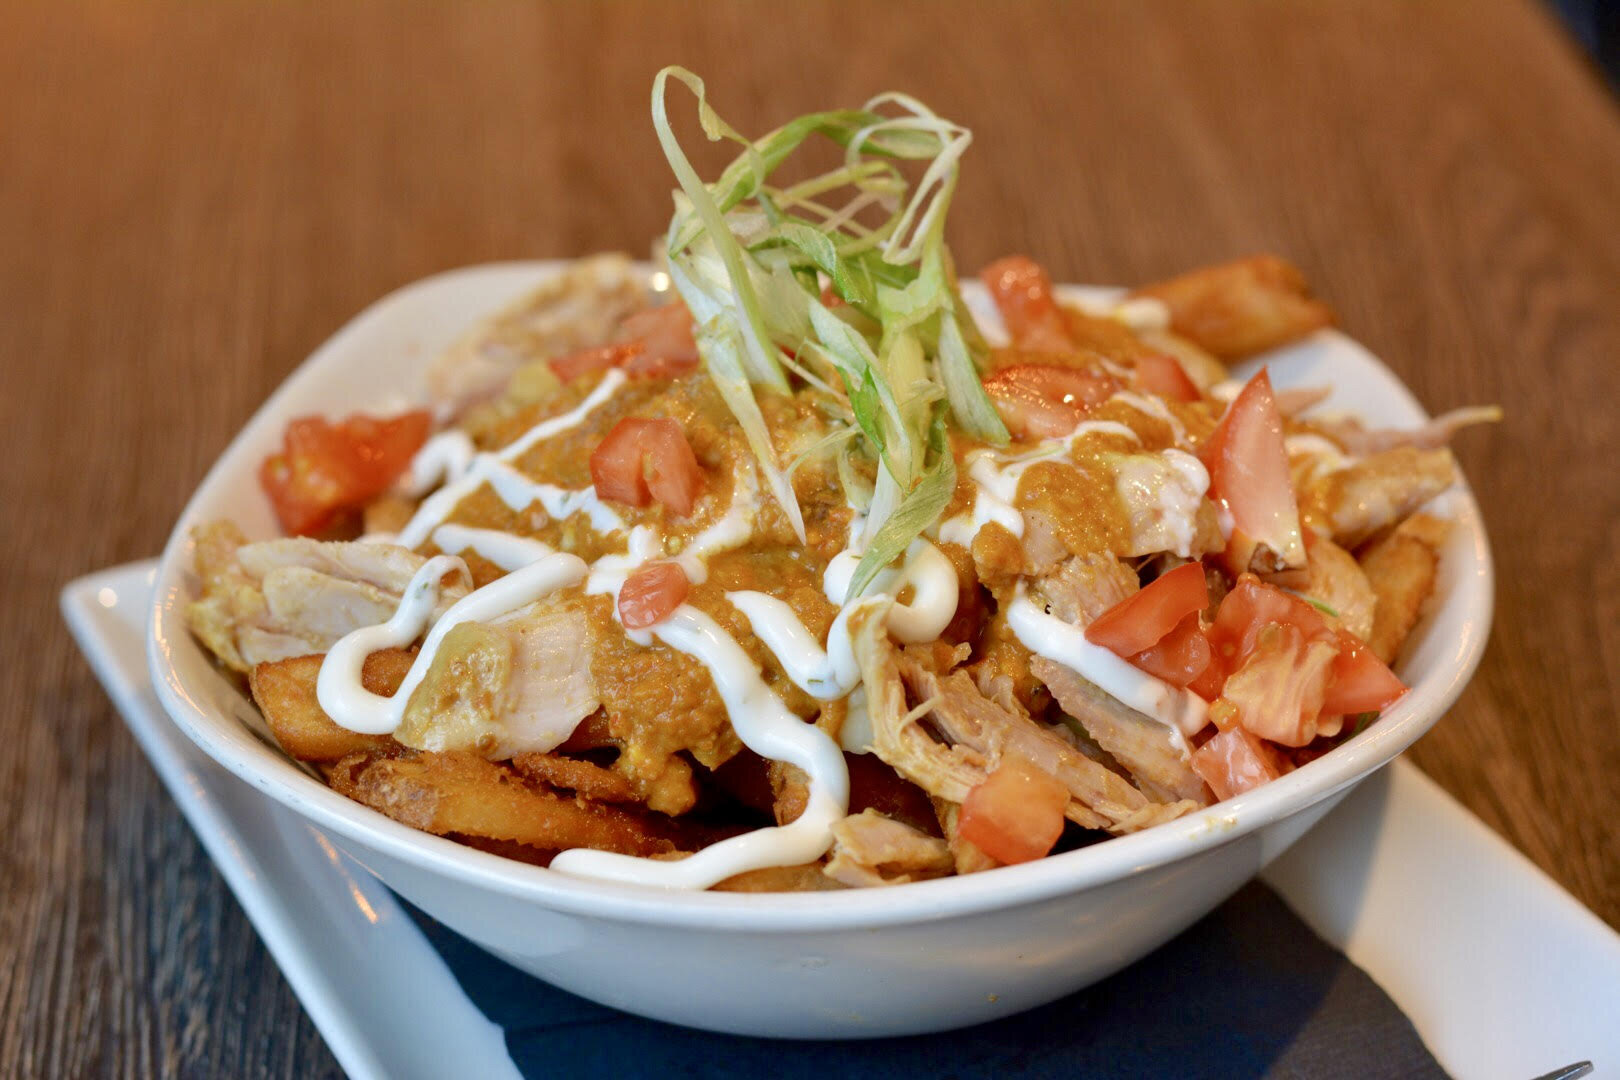 328 Taphouse Curry Poutine 1.jpg